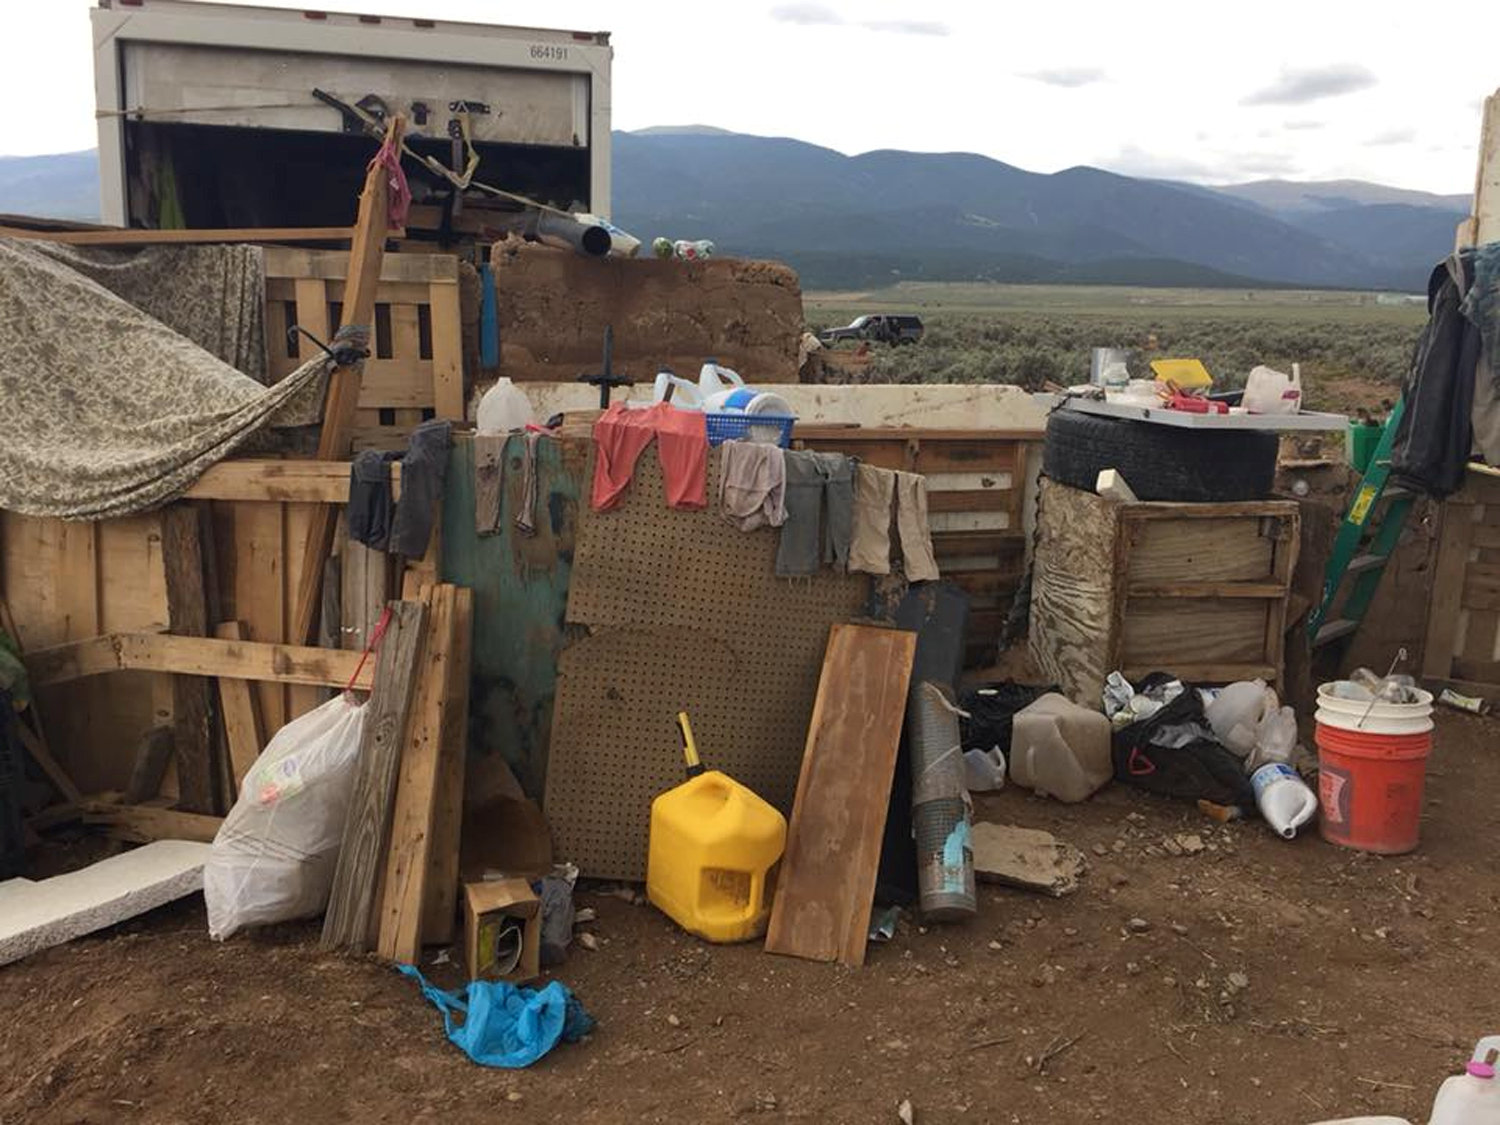 Conditions at a compound in rural New Mexico where 11 children were taken into protective custody for their own health and safety after a raid by authorities, are shown in this photo near Amalia, New Mexico, U.S., provided August 6, 2018. Taos County Sheriff's Office/Handout via REUTERS